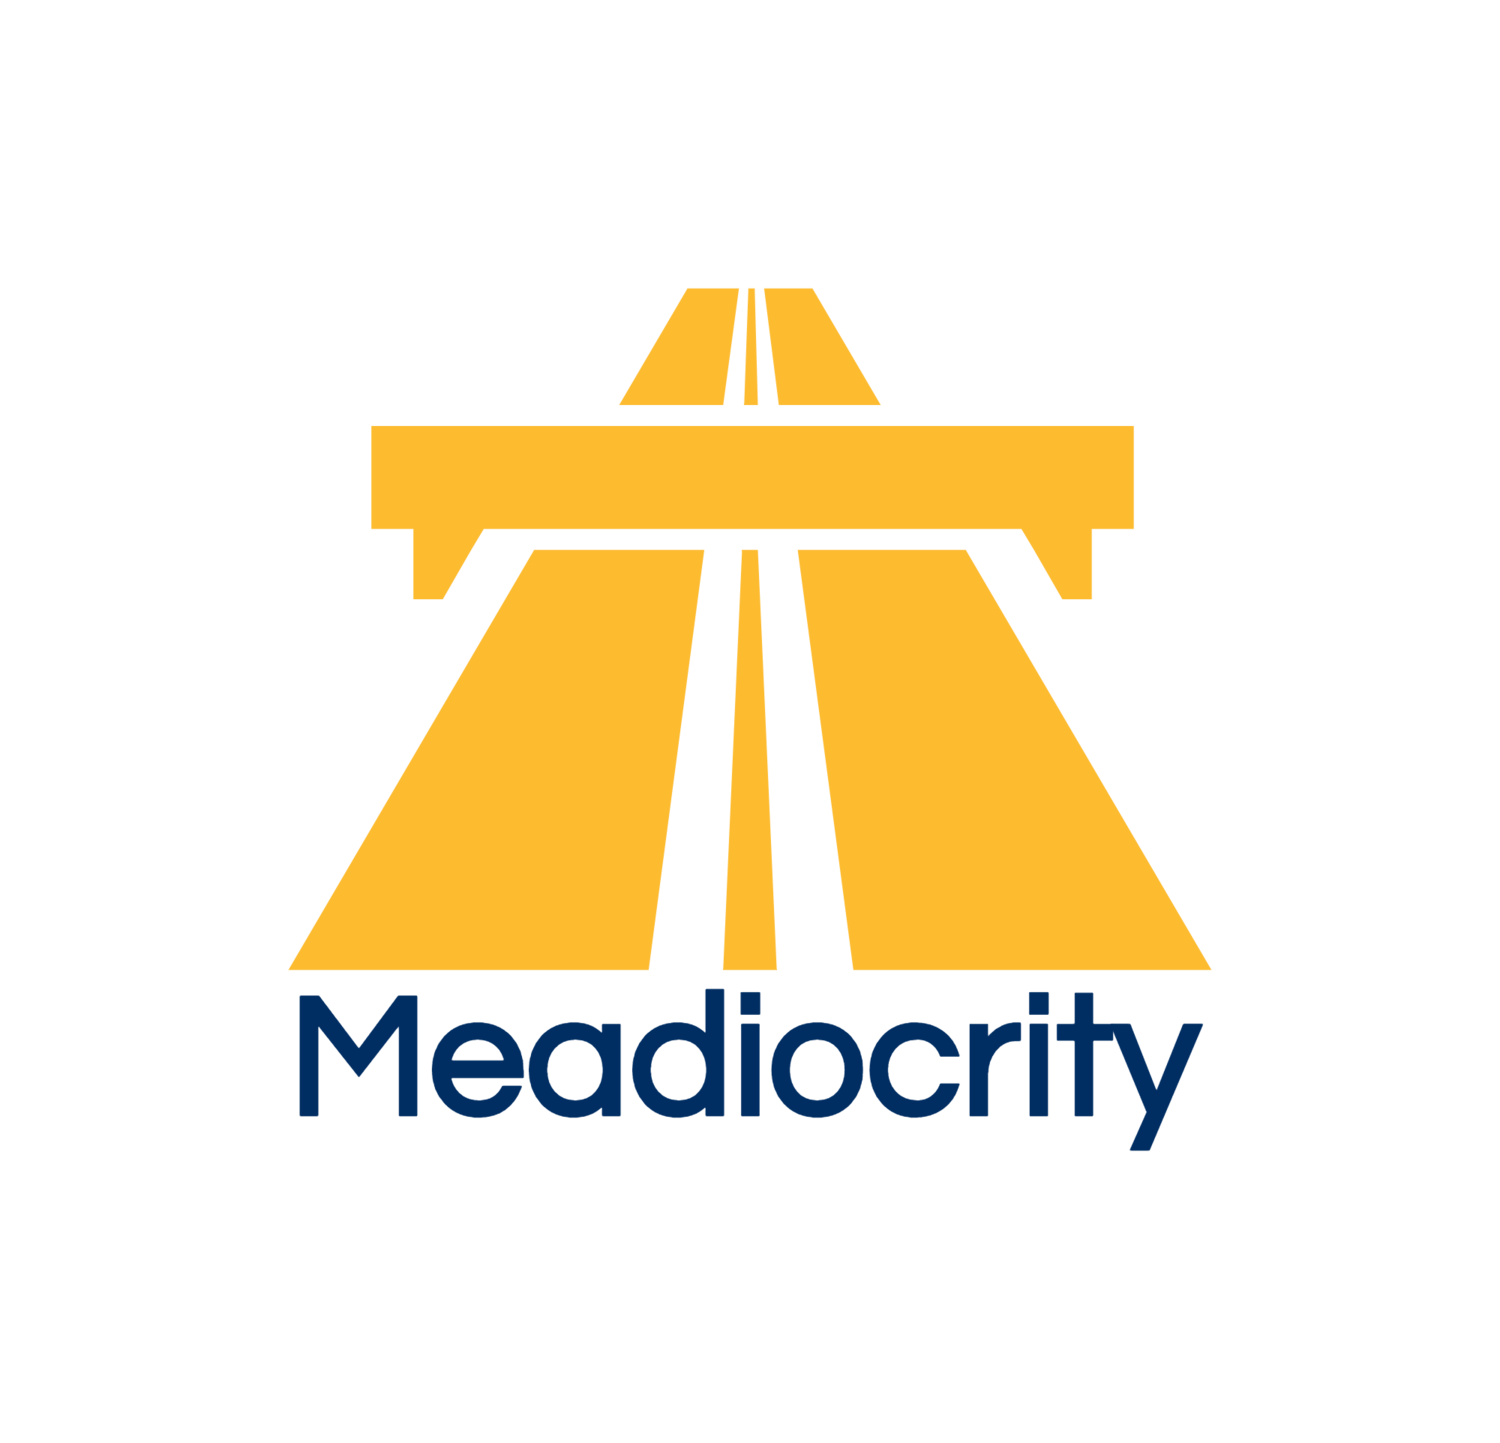 Meadiocrity